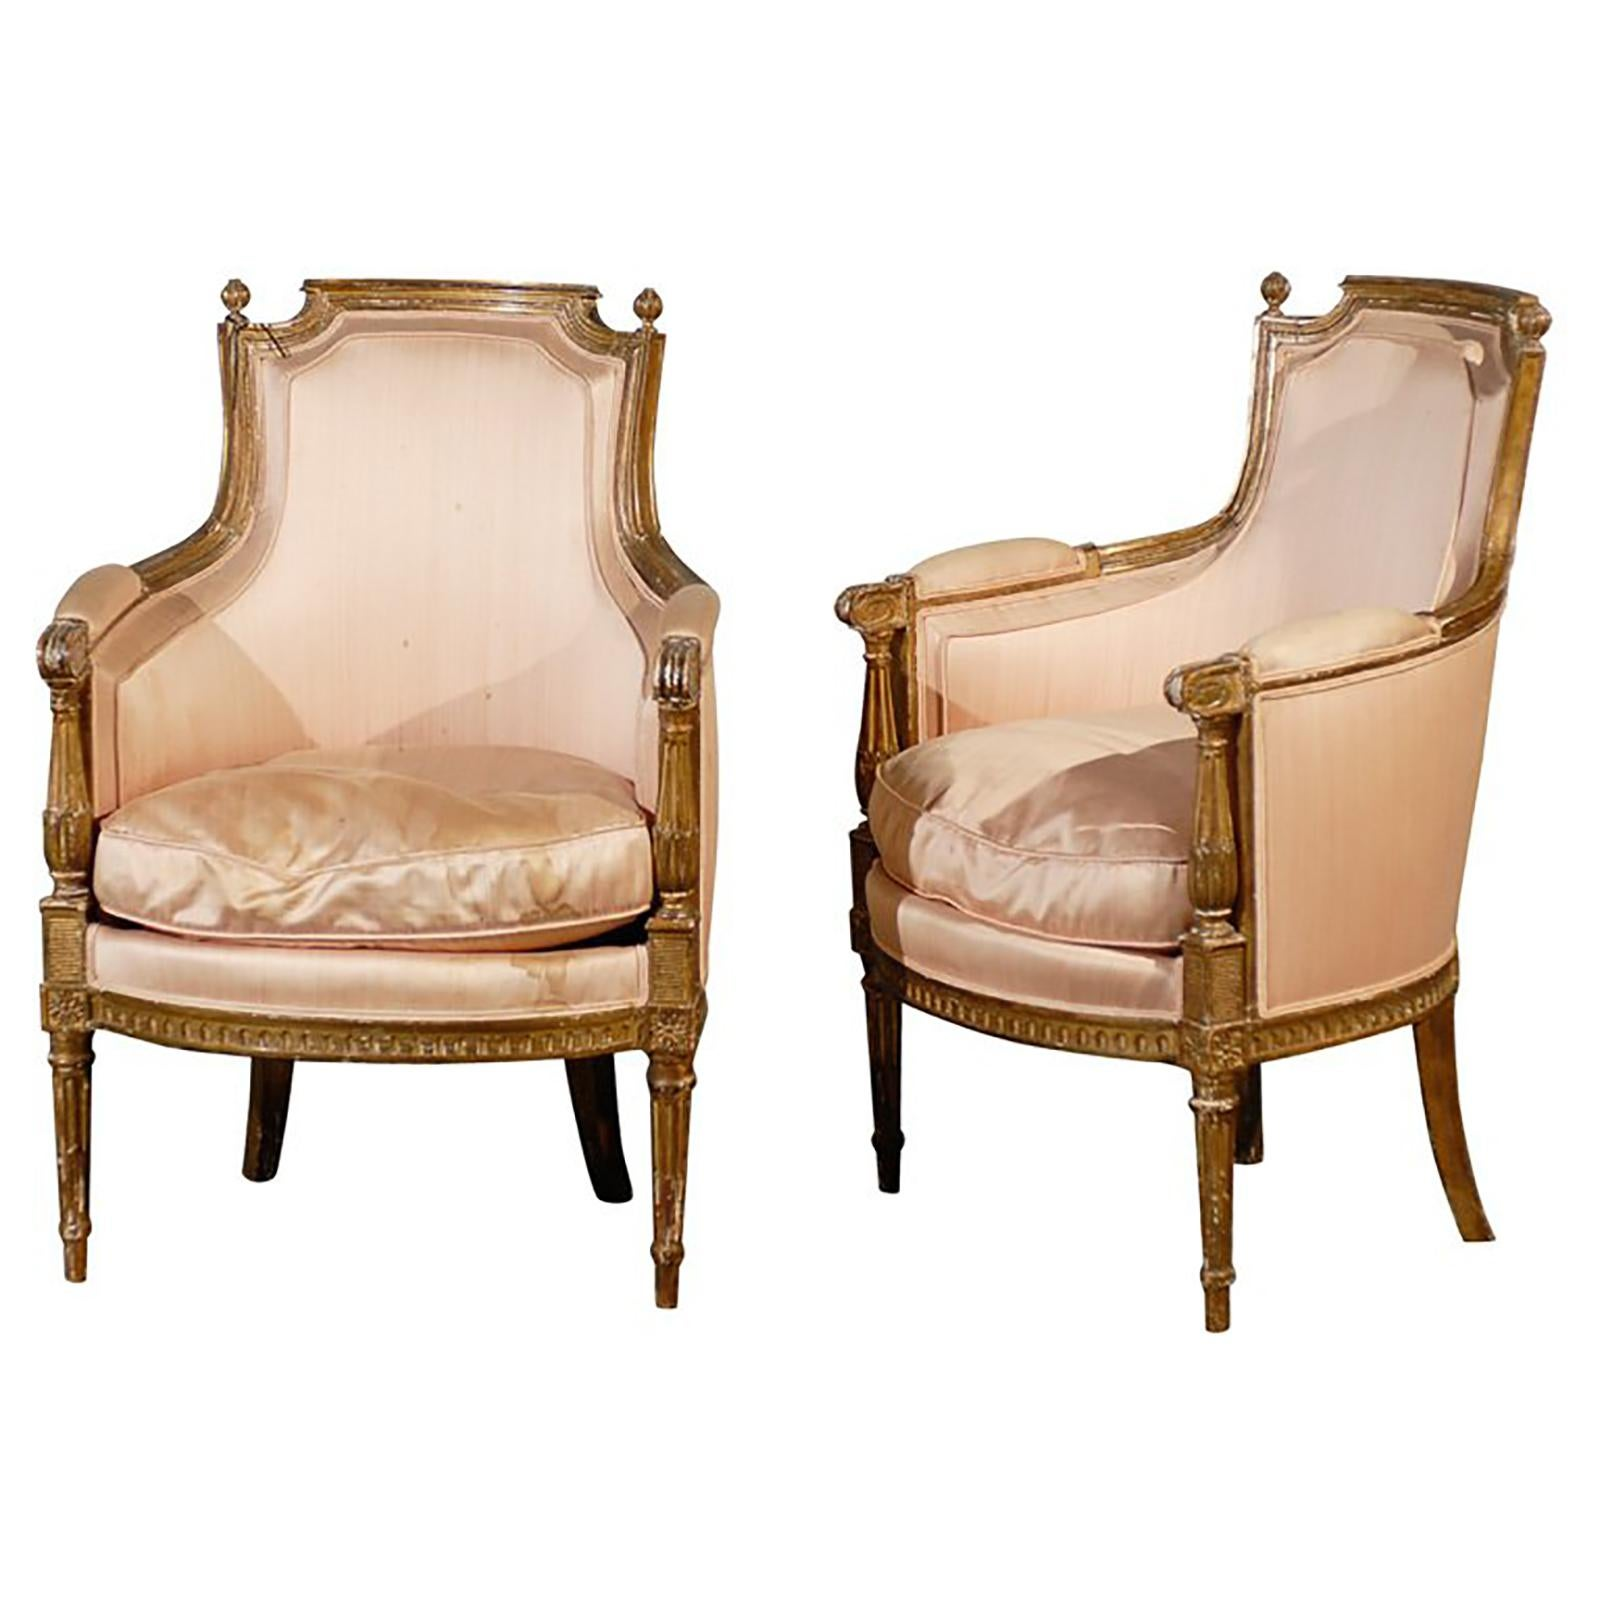 Pair of 20th Century Louis XVI Style Giltwood Bergère Chairs